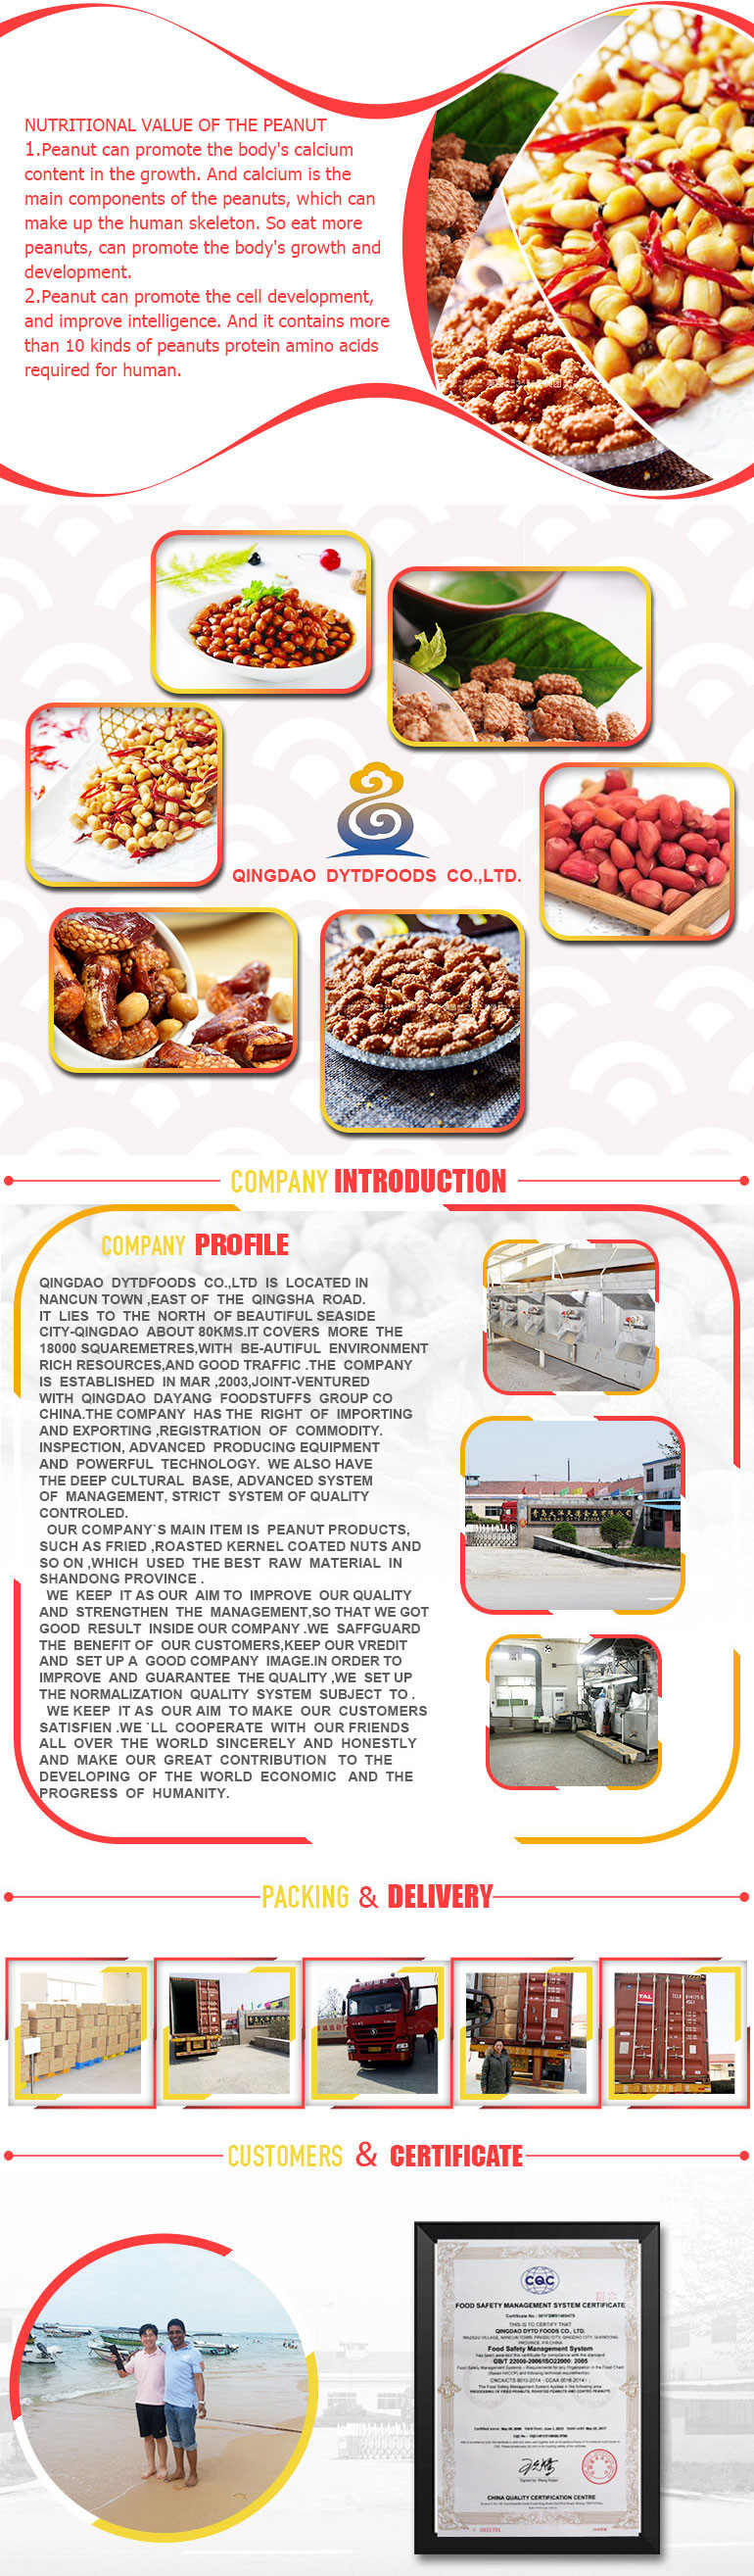 alibaba products snackred fish peanuts